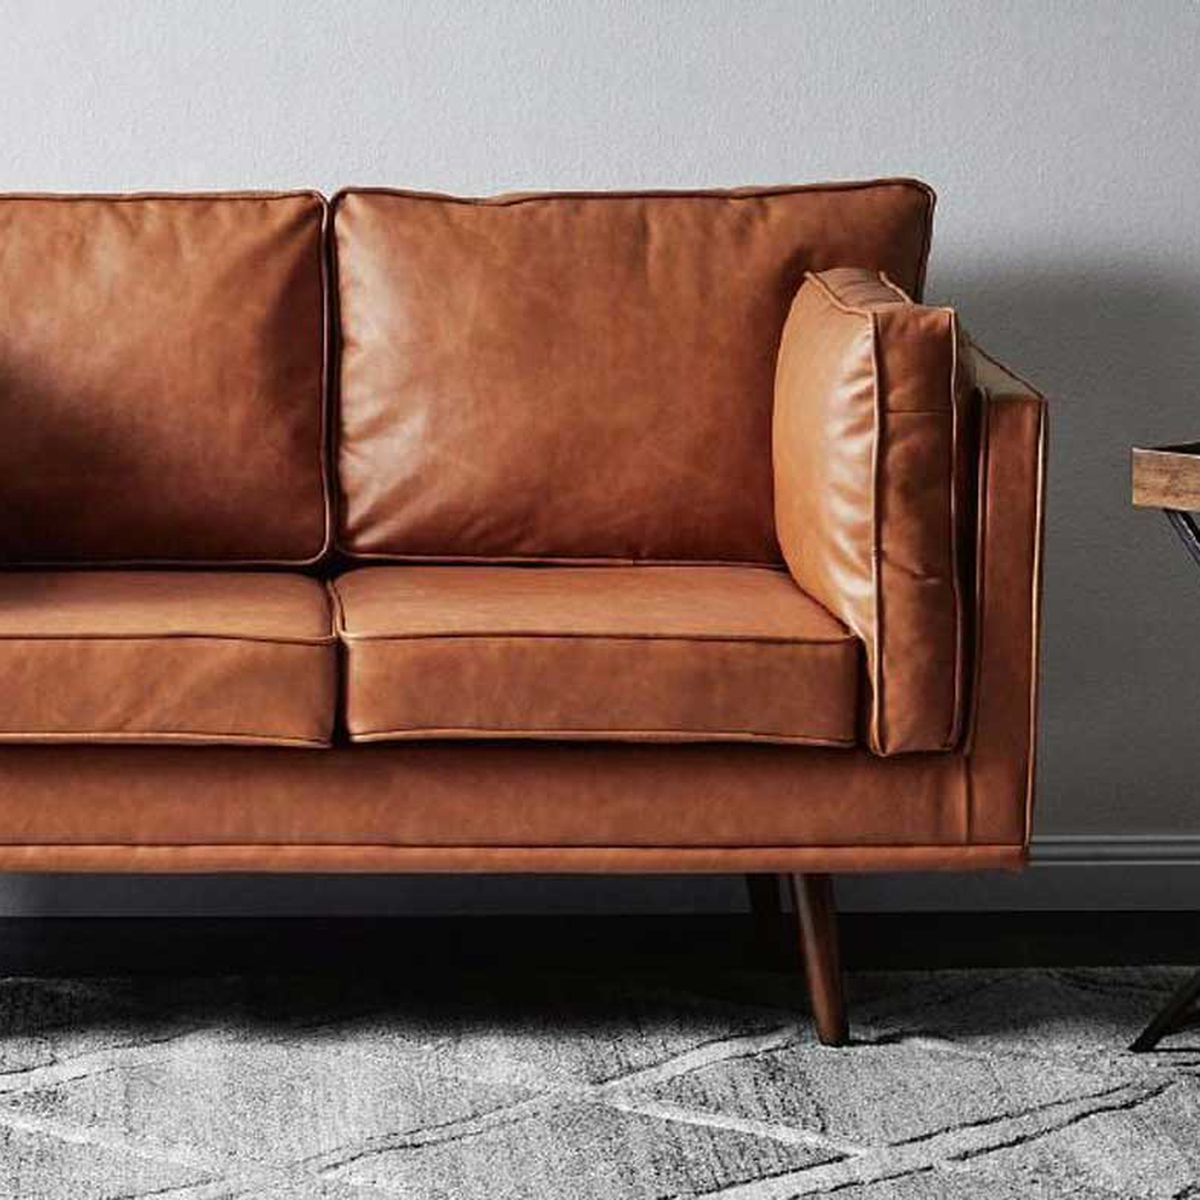 Couch In New Furniture